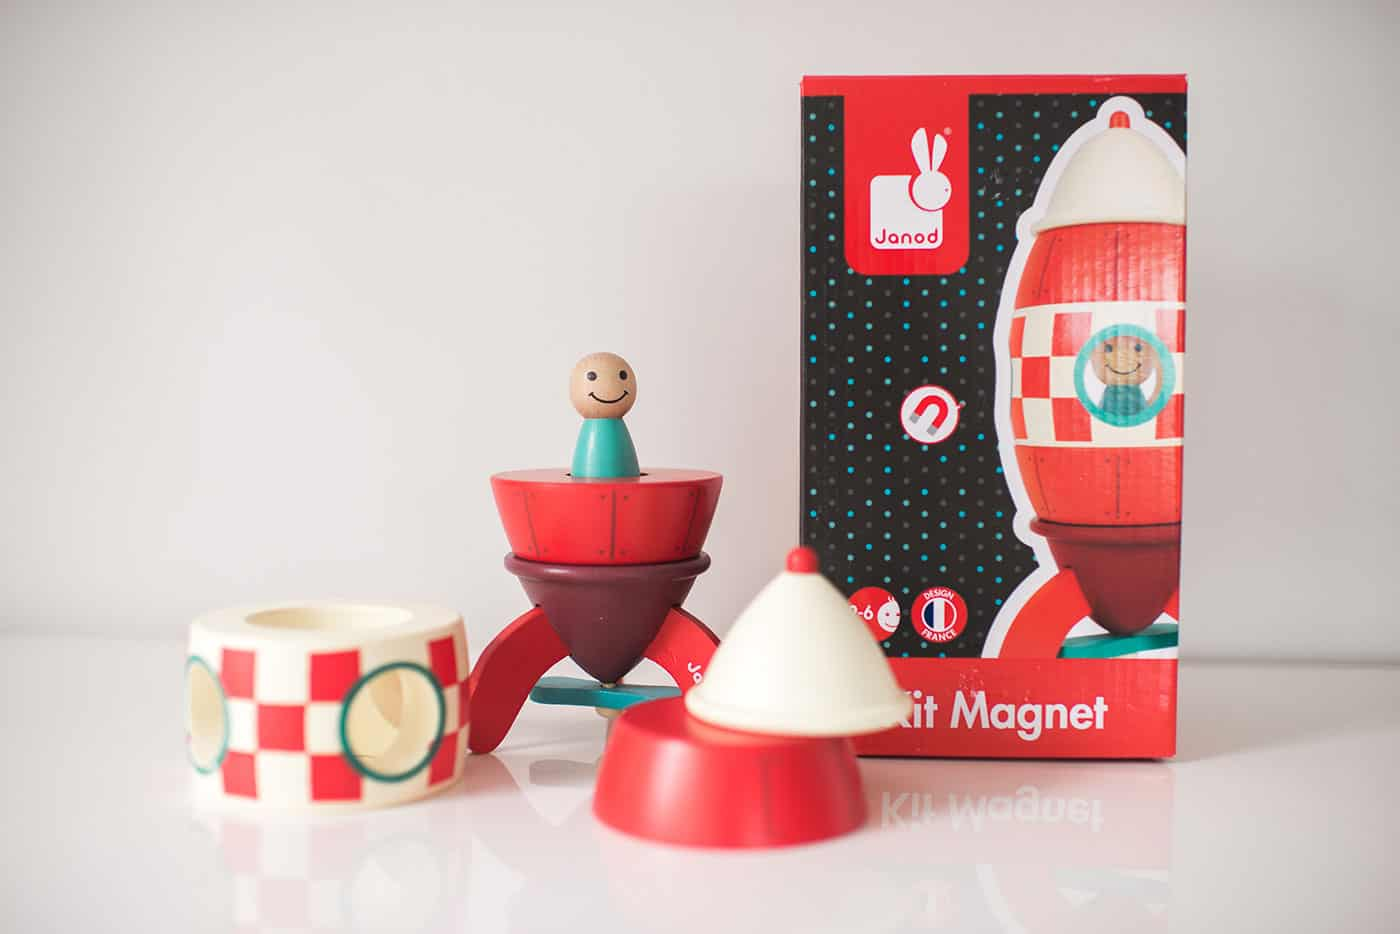 Tiffani Thiessen's Holiday Gift Guide 2016: For the preschooler (boy): Janod Rocket Magnet